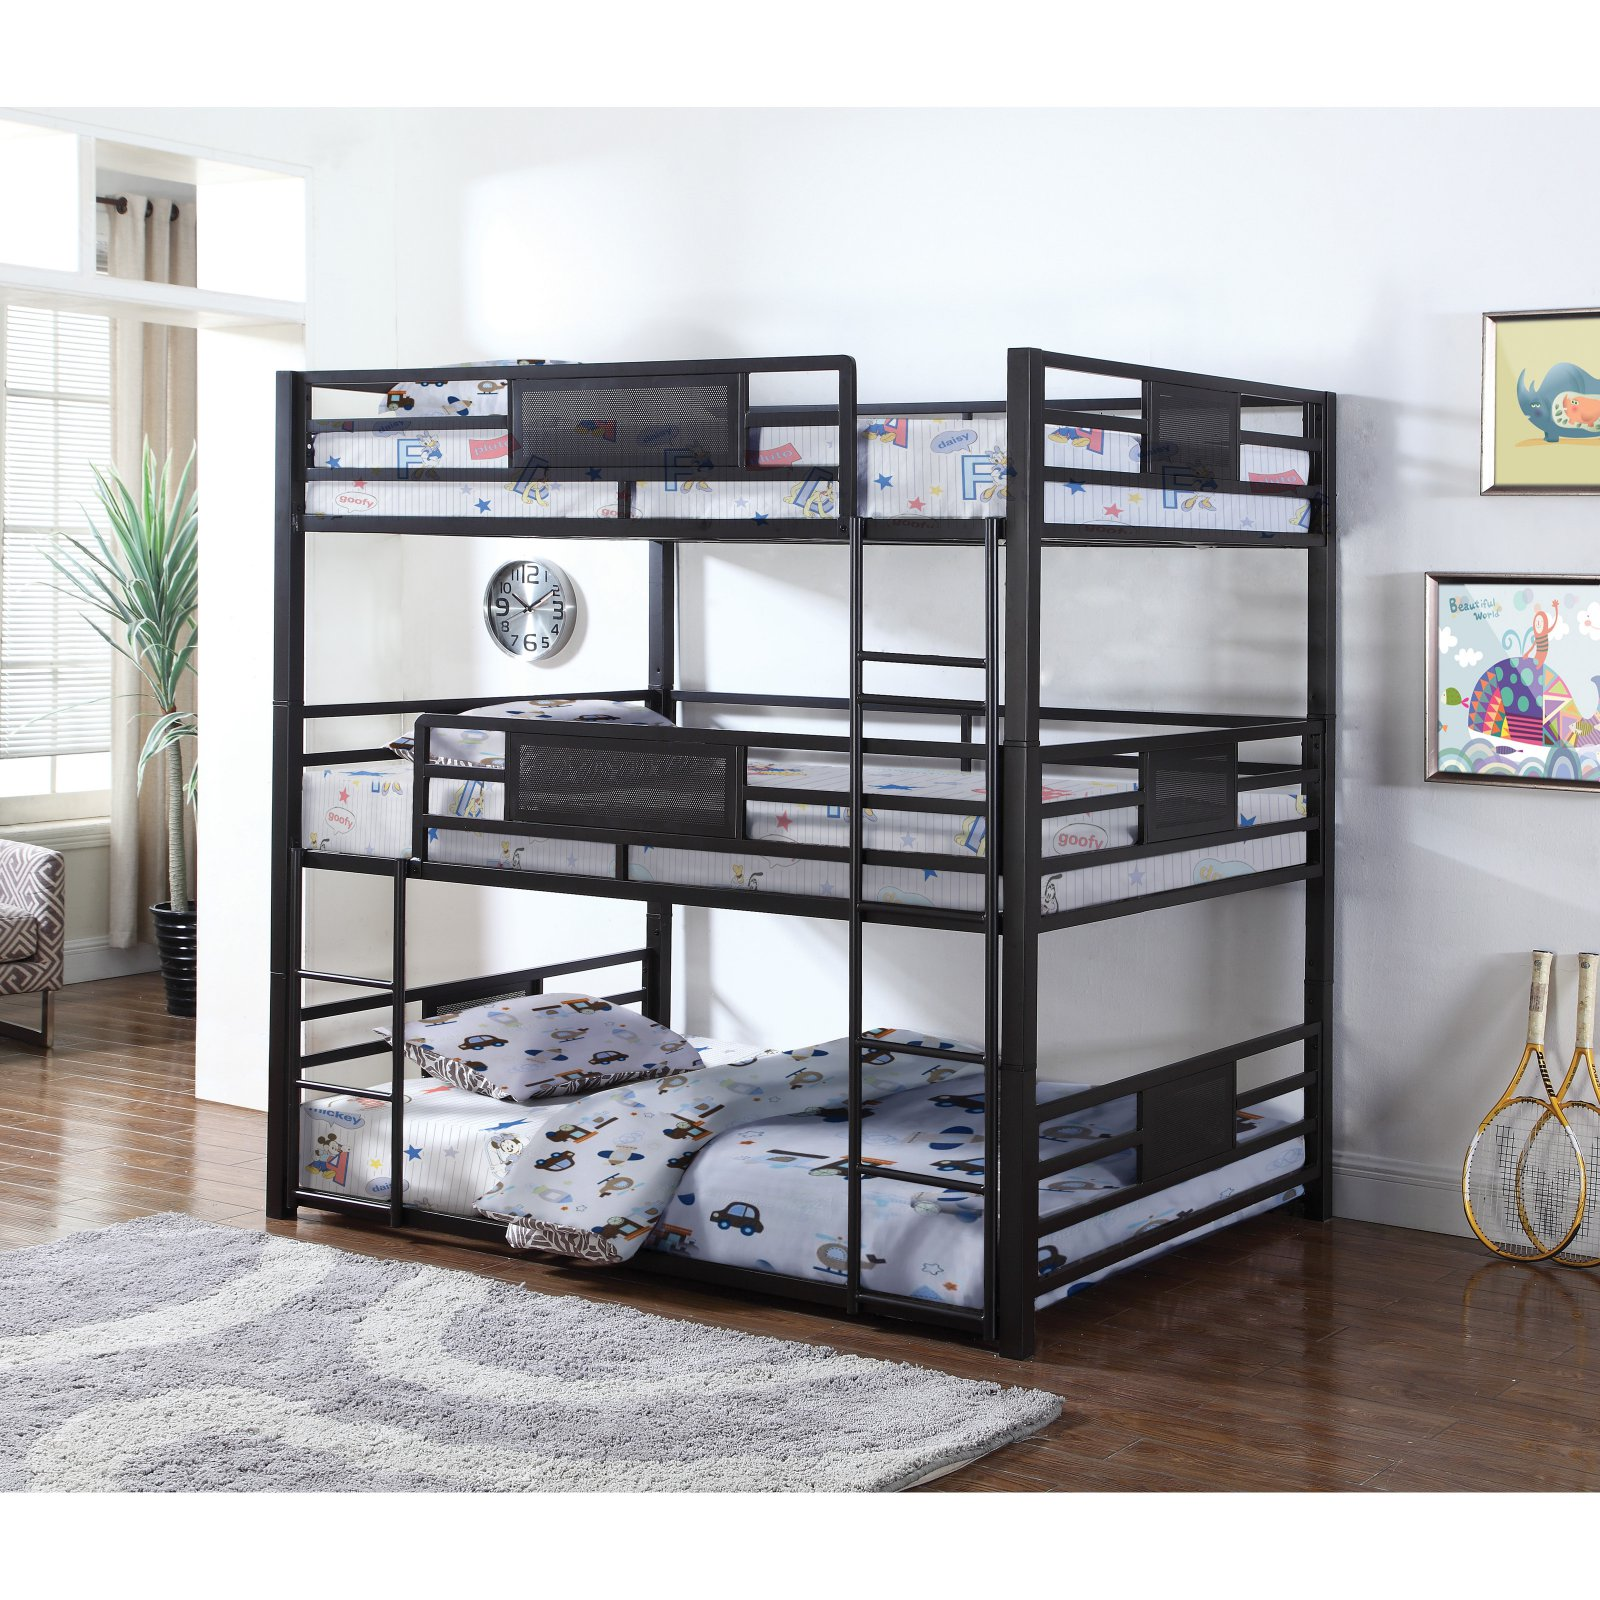 Coaster Rogen triple bunk bed in full.  Finished in dark bronze, contructed with steel.